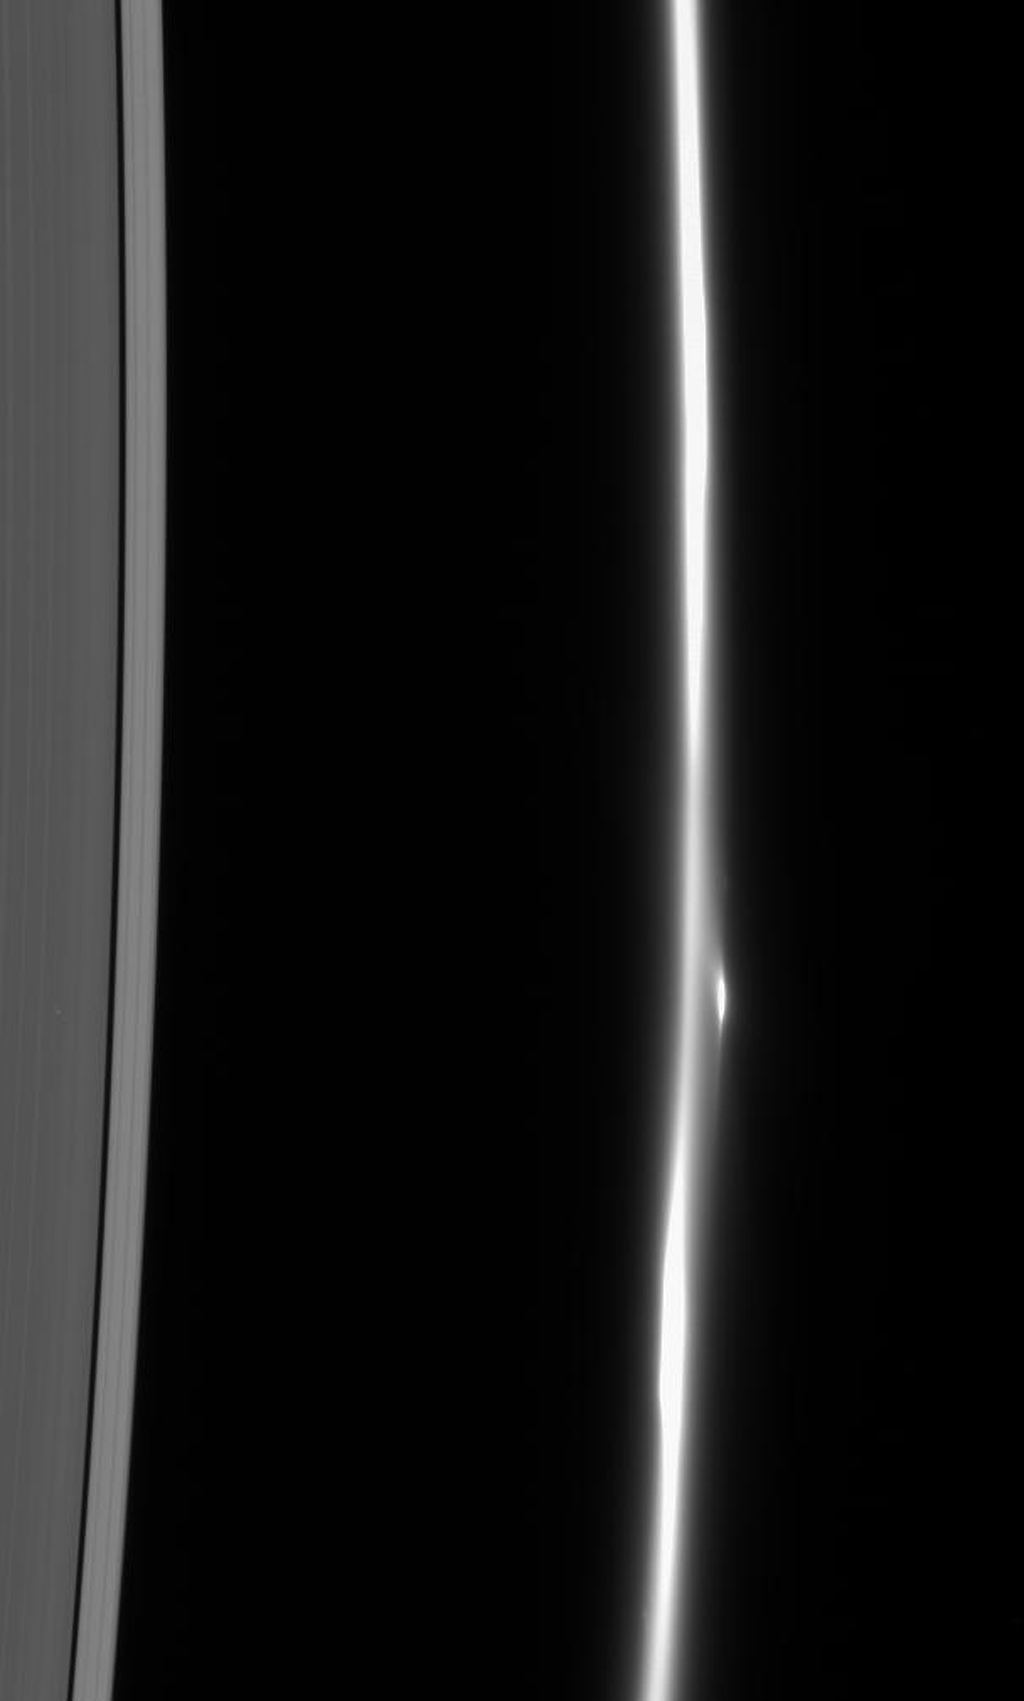 The F ring dissolves into a fuzzy stream of particles -- rather different from its usual appearance of a narrow, bright core flanked by dimmer ringlets. A bright clump of material flanks the ring's core as seen by NASA's Cassini spacecraft.